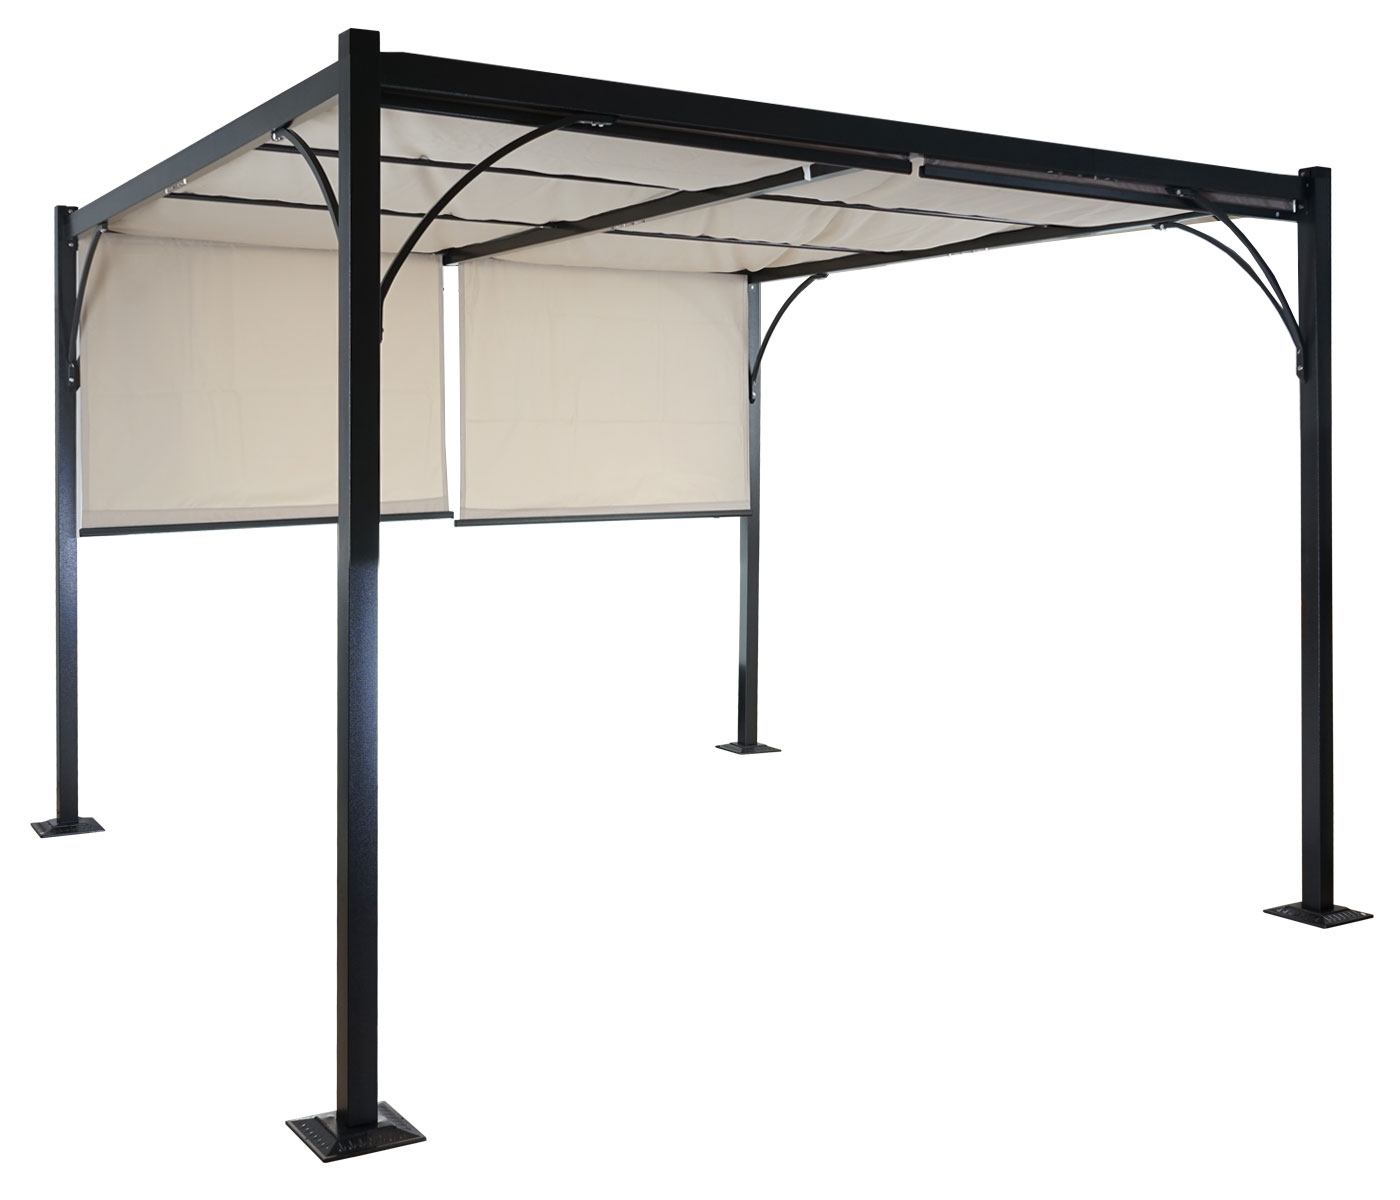 pergola granada alu garten pavillon 3x3m. Black Bedroom Furniture Sets. Home Design Ideas